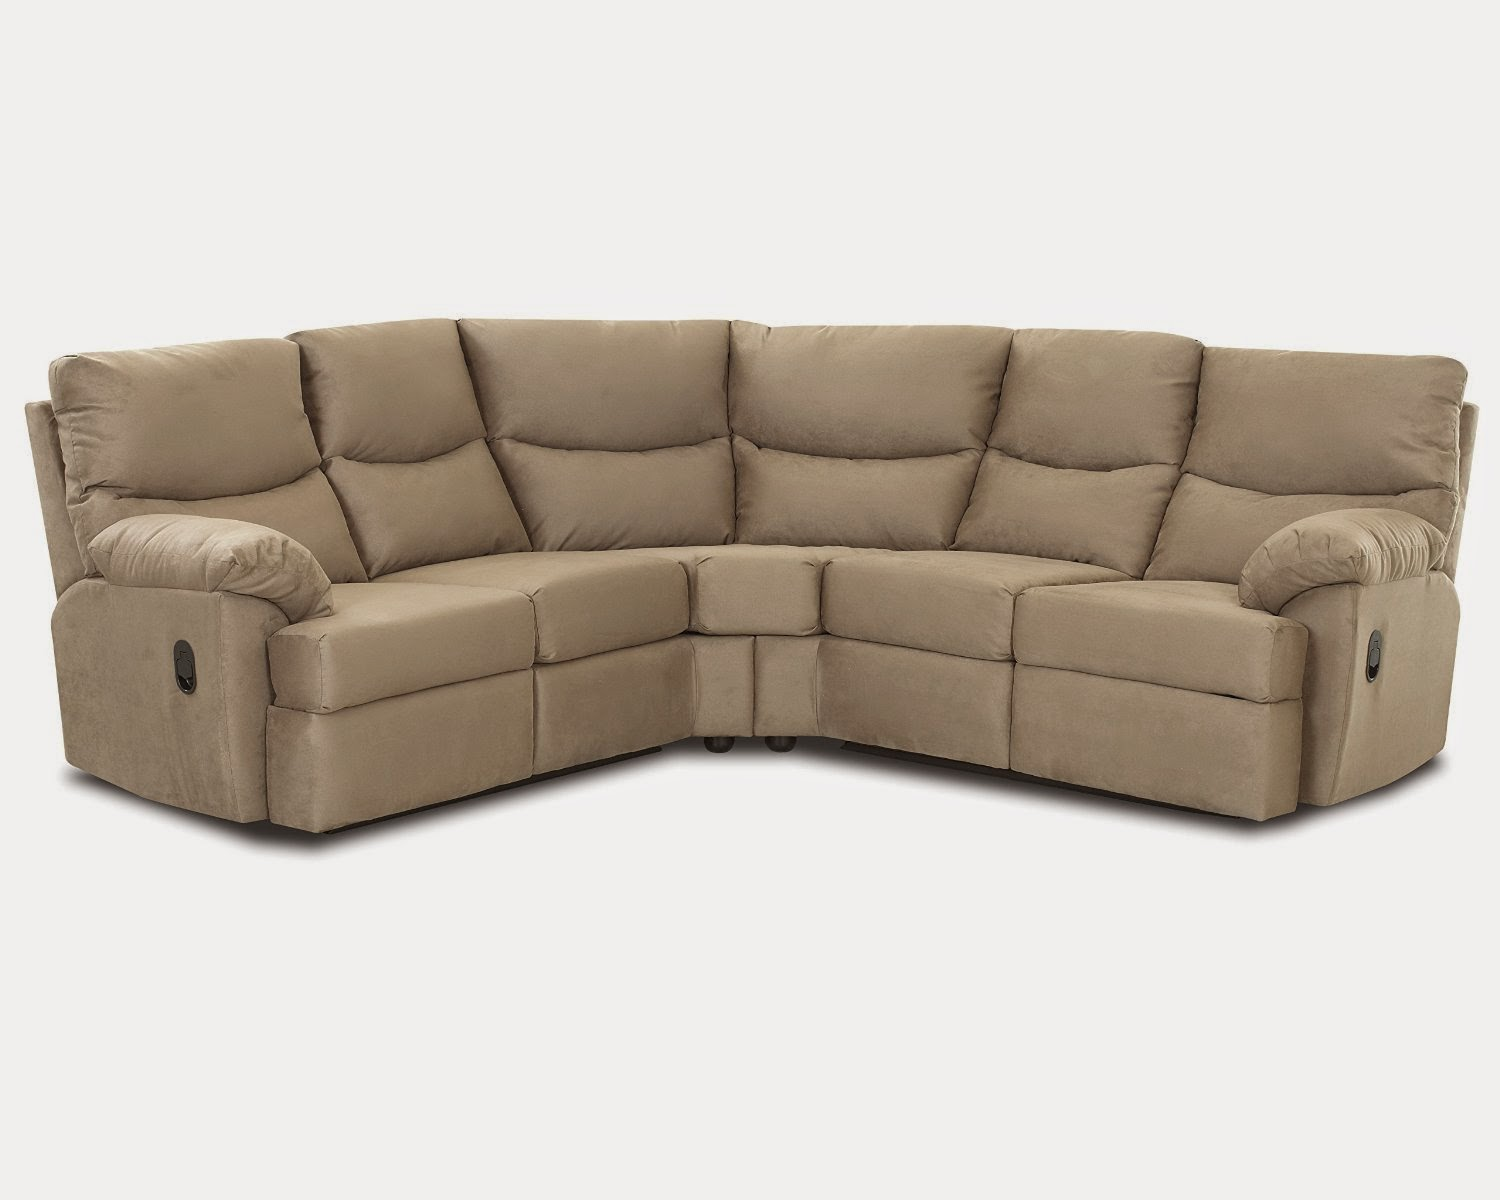 Top Seller Reclining And Recliner Sofa Loveseat Phoenix Reclining Corner Sectional With Sleeper: sofa sleeper loveseat